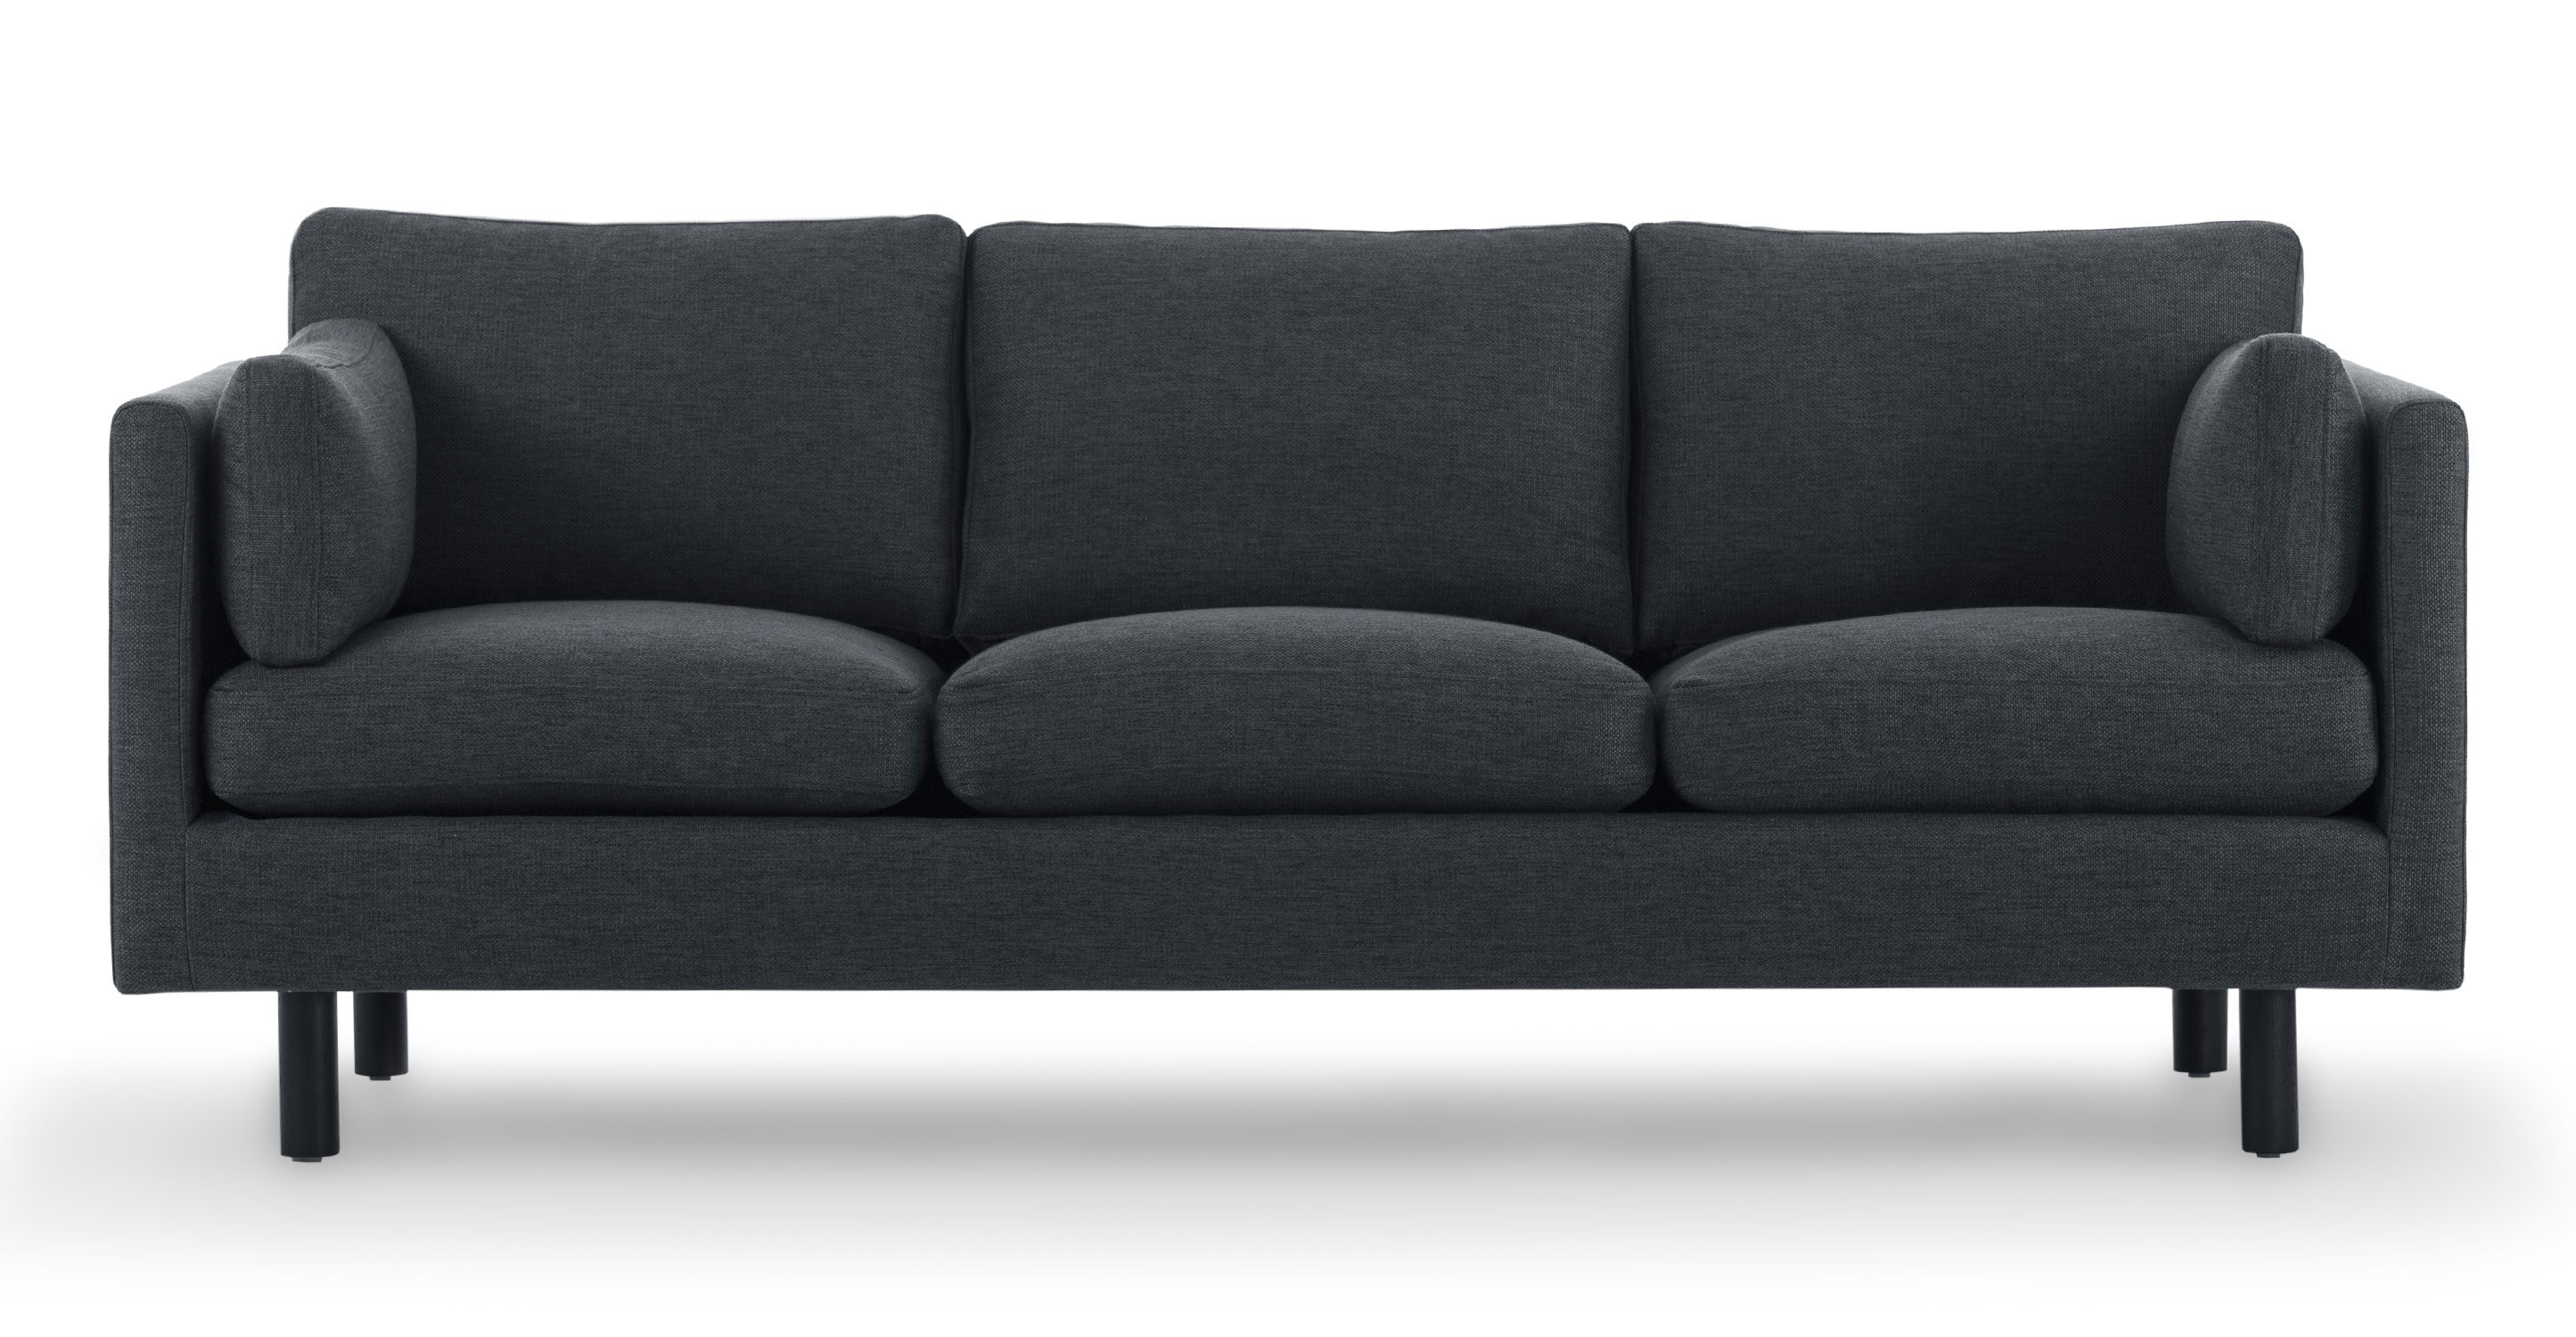 mid century style sofa canada how to remove ballpoint pen ink from leather nova bard gray sofas article modern